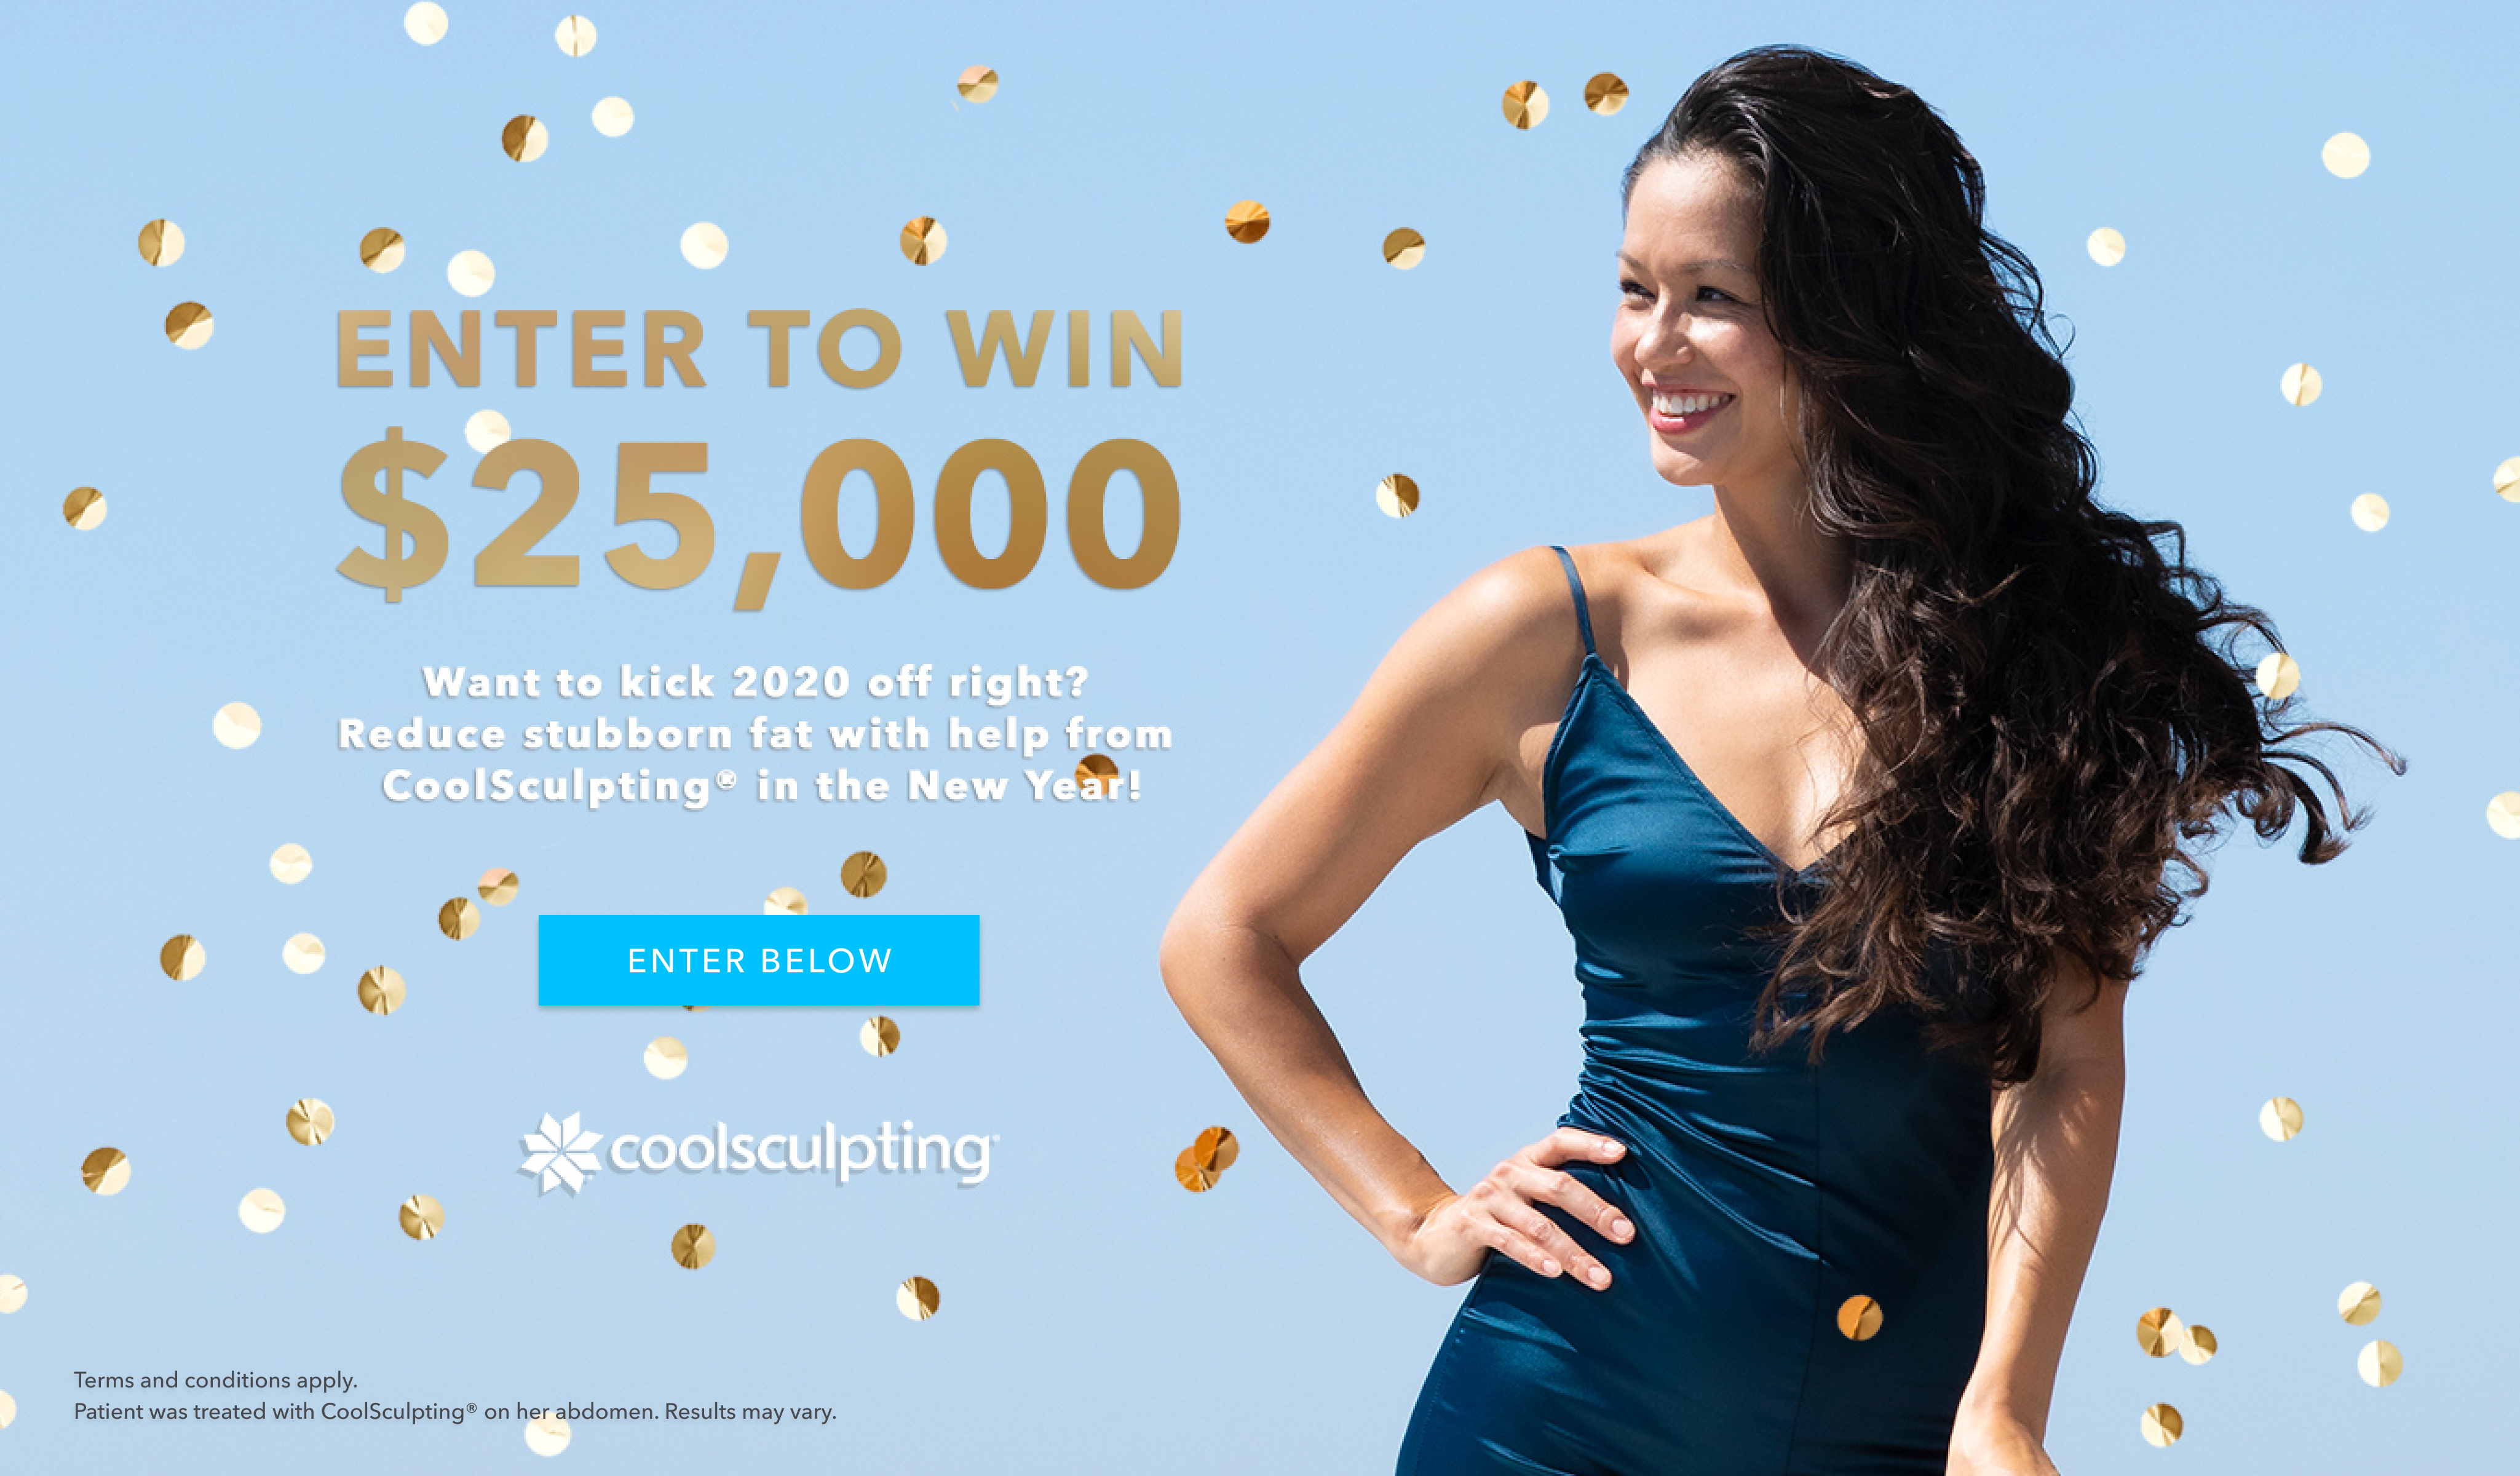 Enter to win 25000